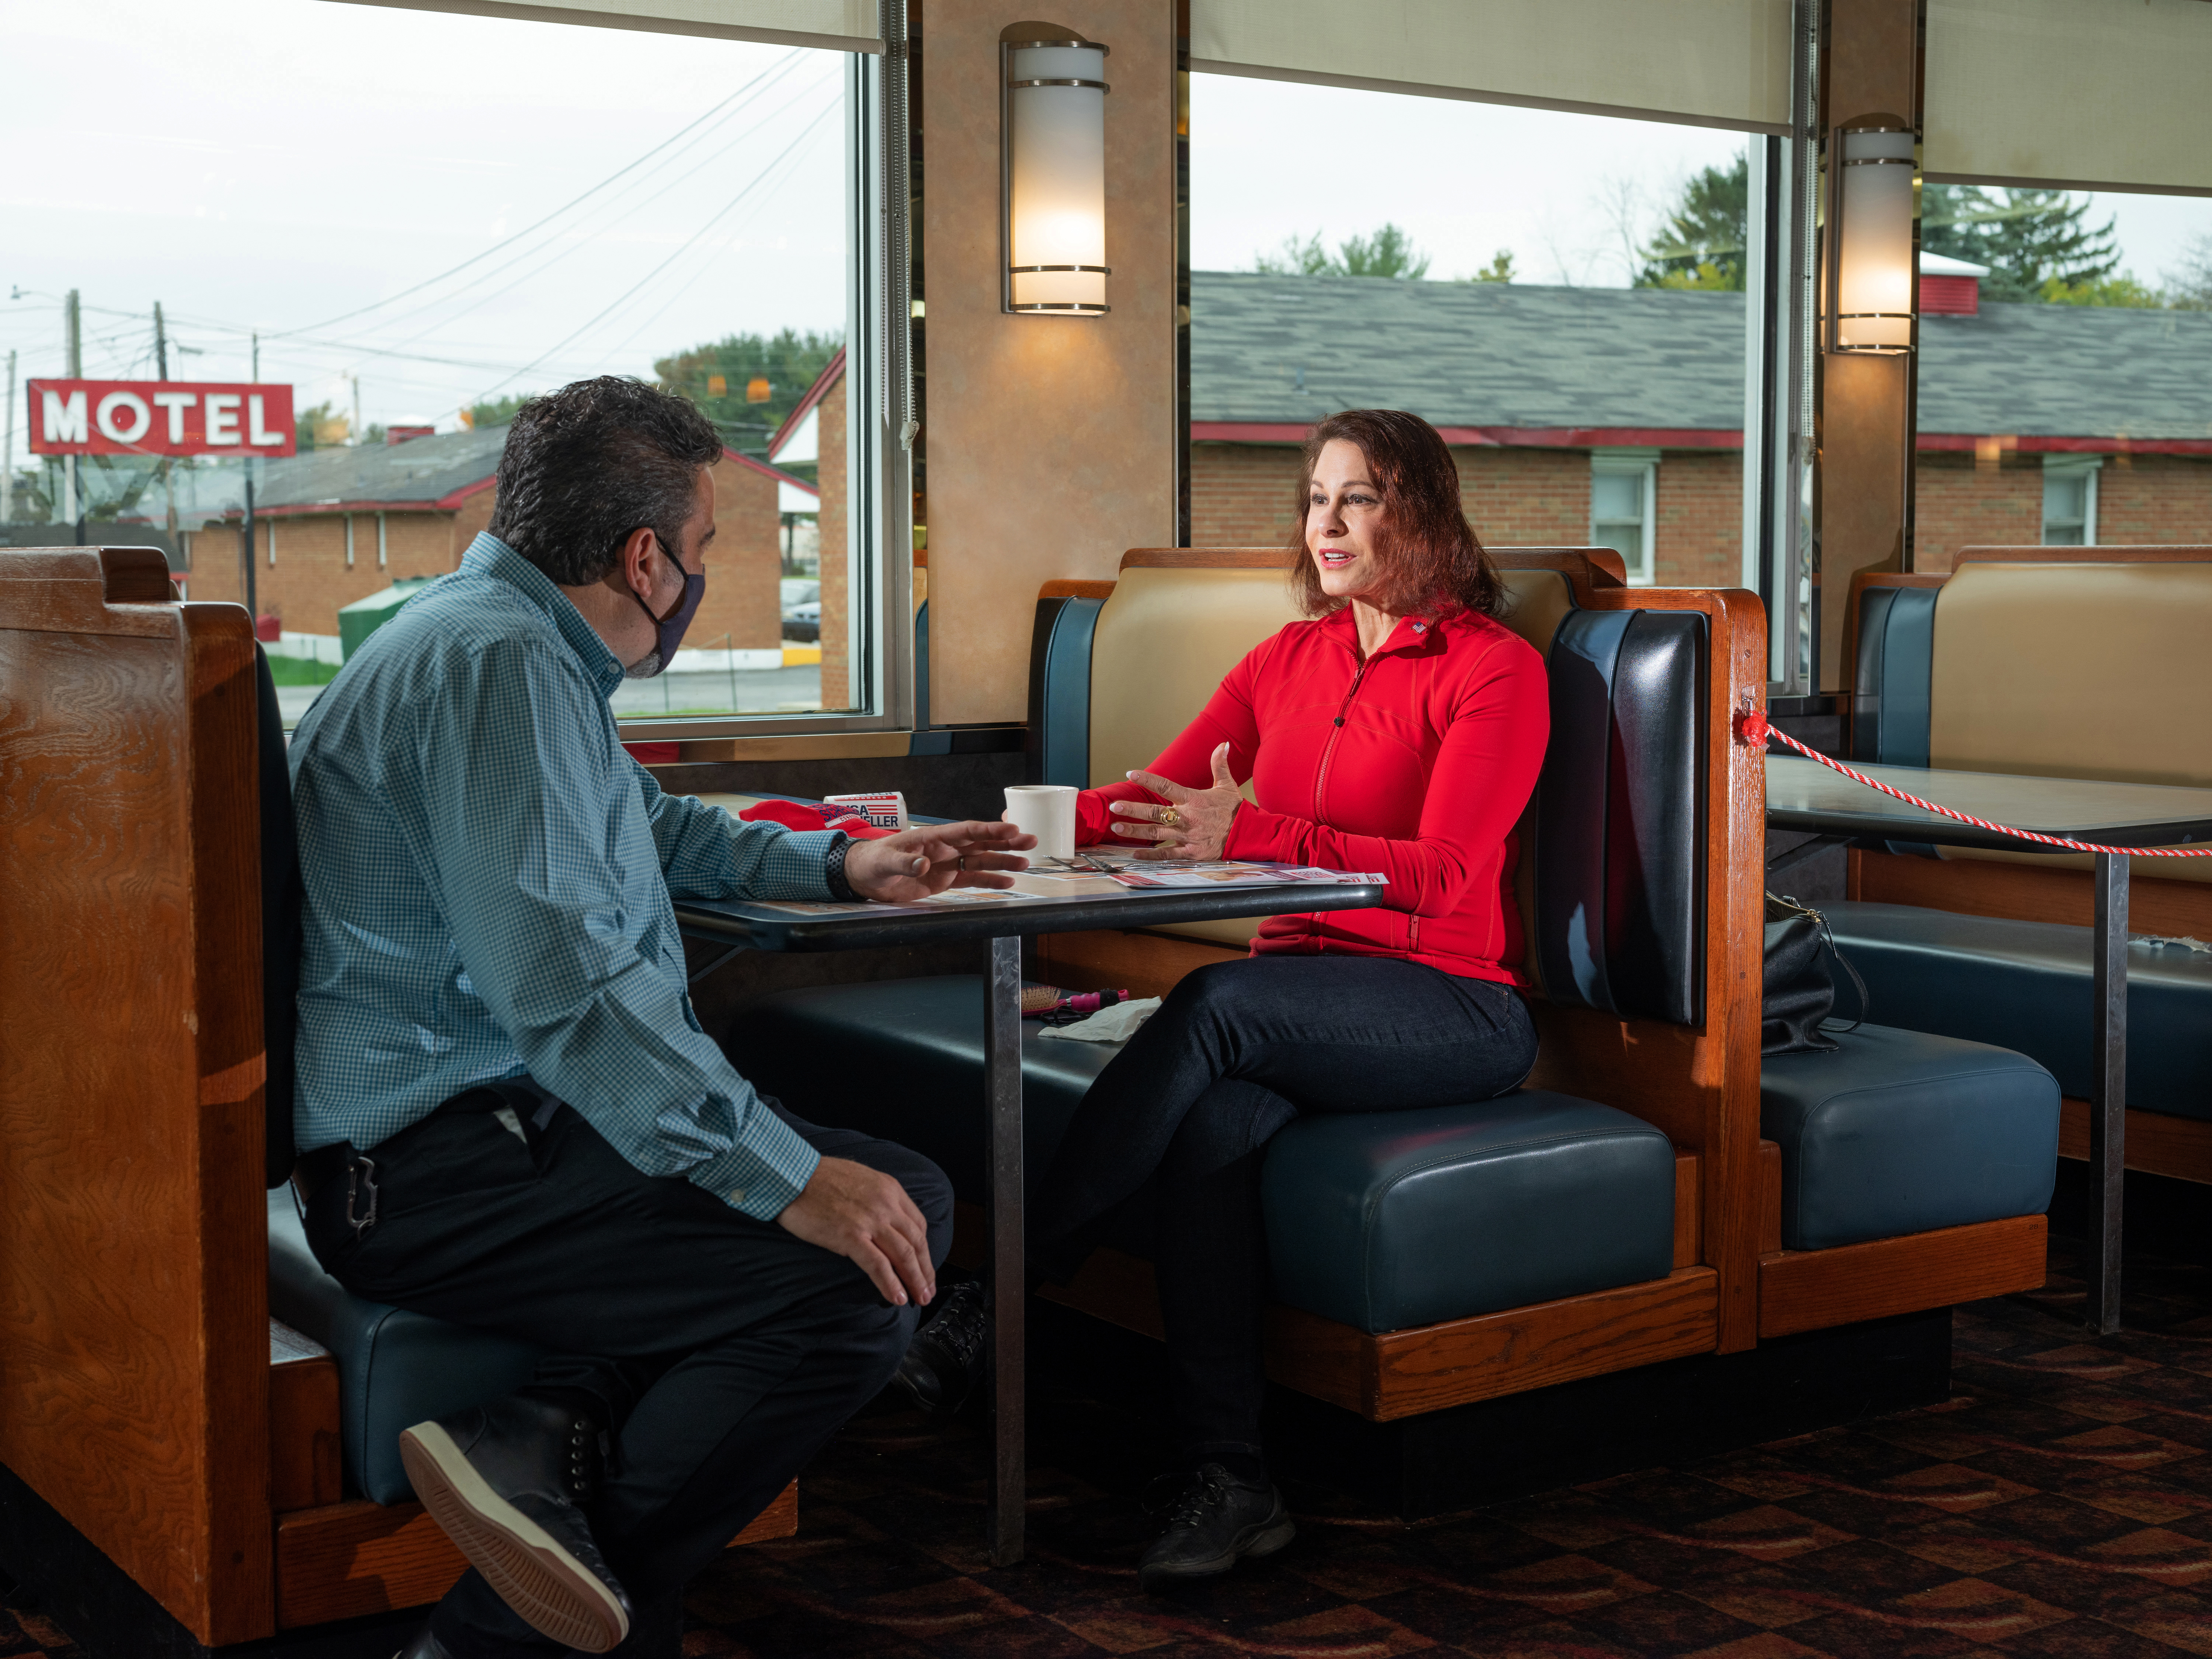 2020 Republican candidate for Pennsylvania's 7th District House race, Lisa Scheller, starts a long day of campaigning at a diner in Allentown, Pa., on Oct. 24, 2020.